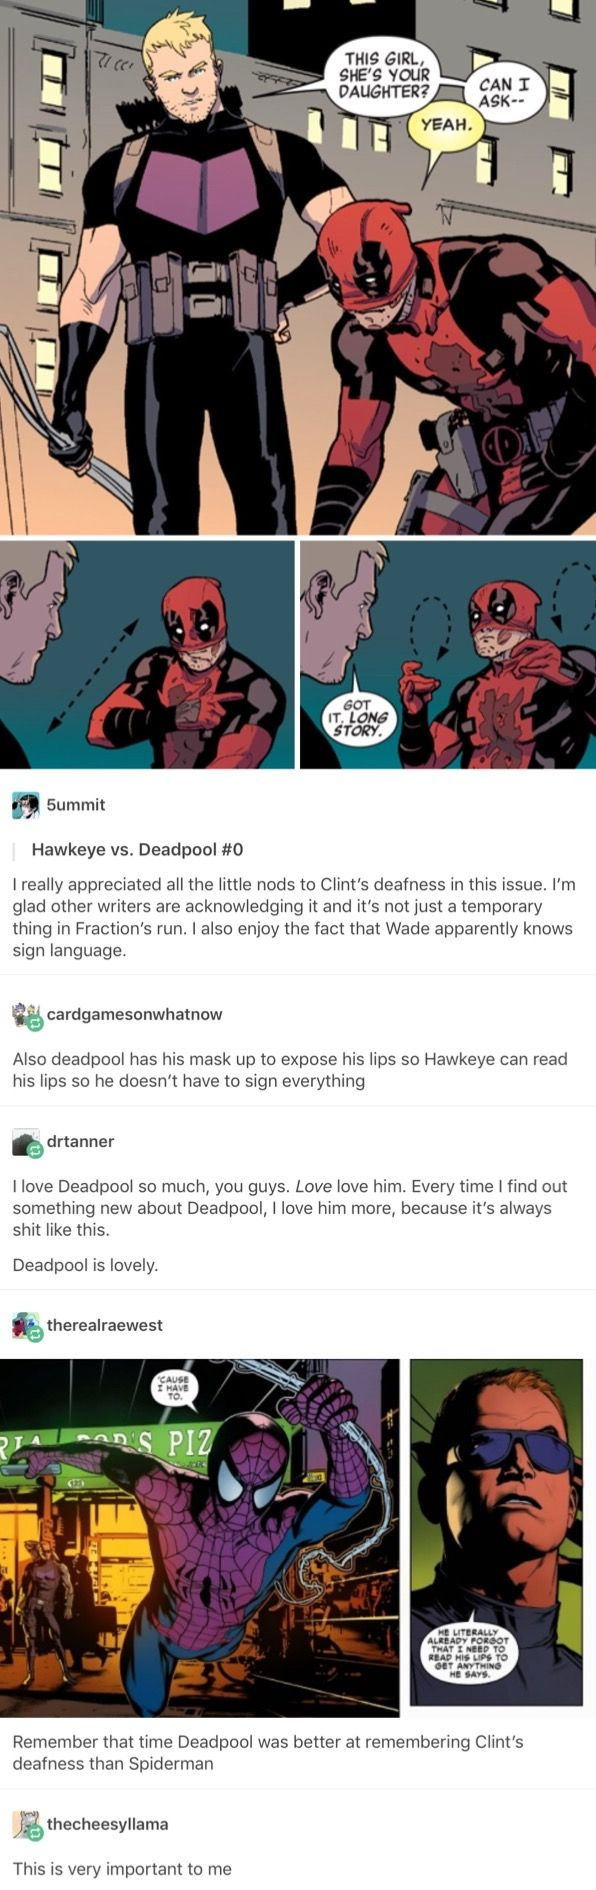 There are so many reasons to love Deadpool and this is just one of them.